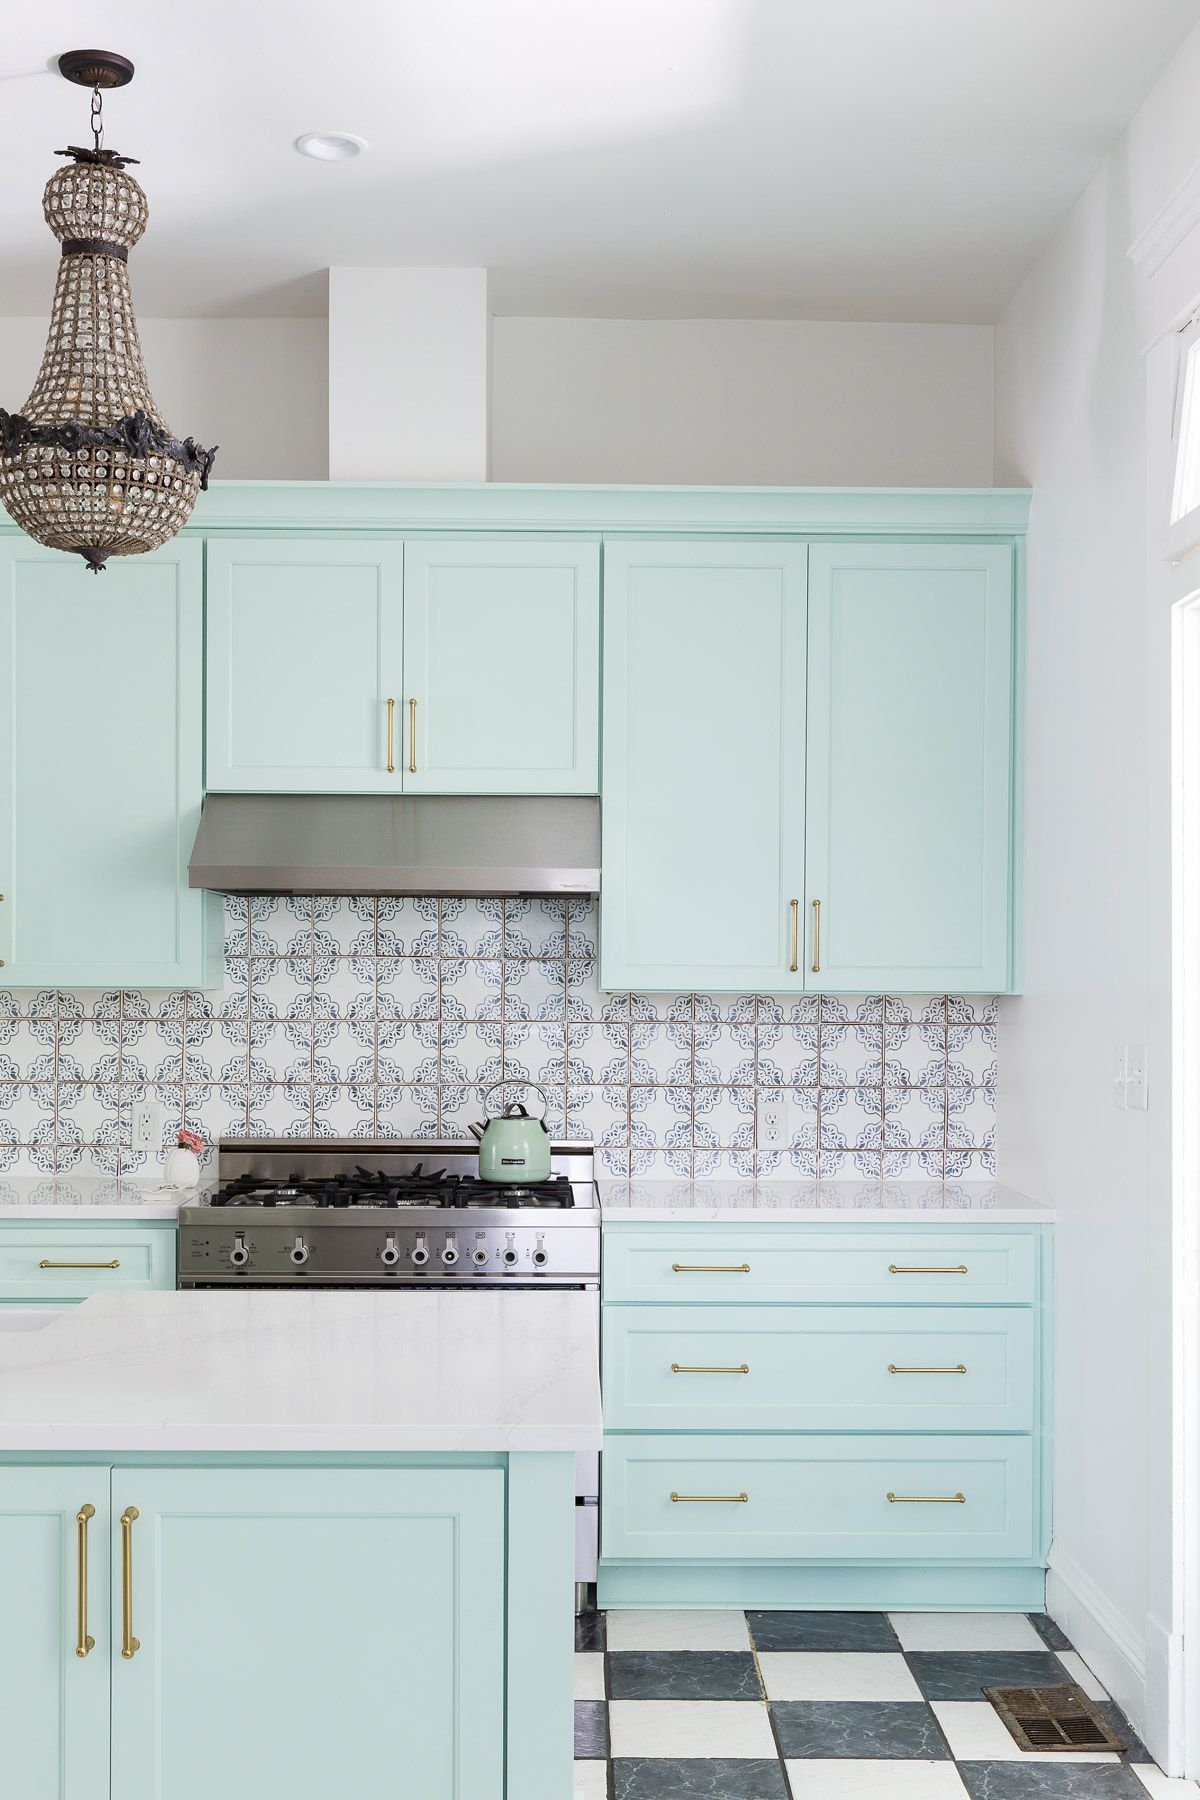 Mint Green Is The Unexpected Kitchen Cabinet Color Your Small Kitchen Needs Small Kitchen Colors Kitchen Cabinets Mint Green Kitchen